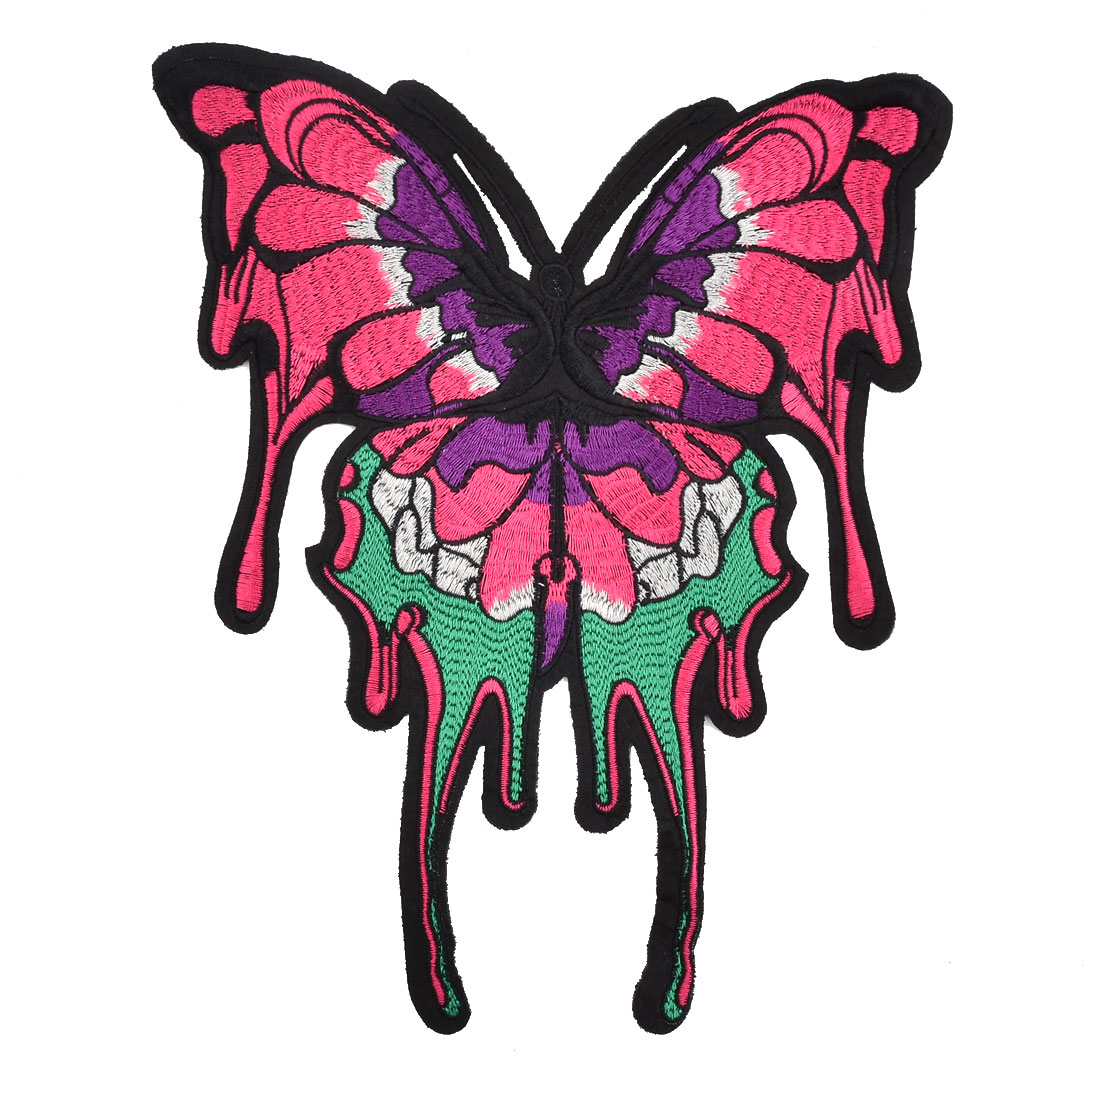 Unique Bargains Household Polyester Butterfly Design DIY Sewing Clothes Decor Lace Applique Red